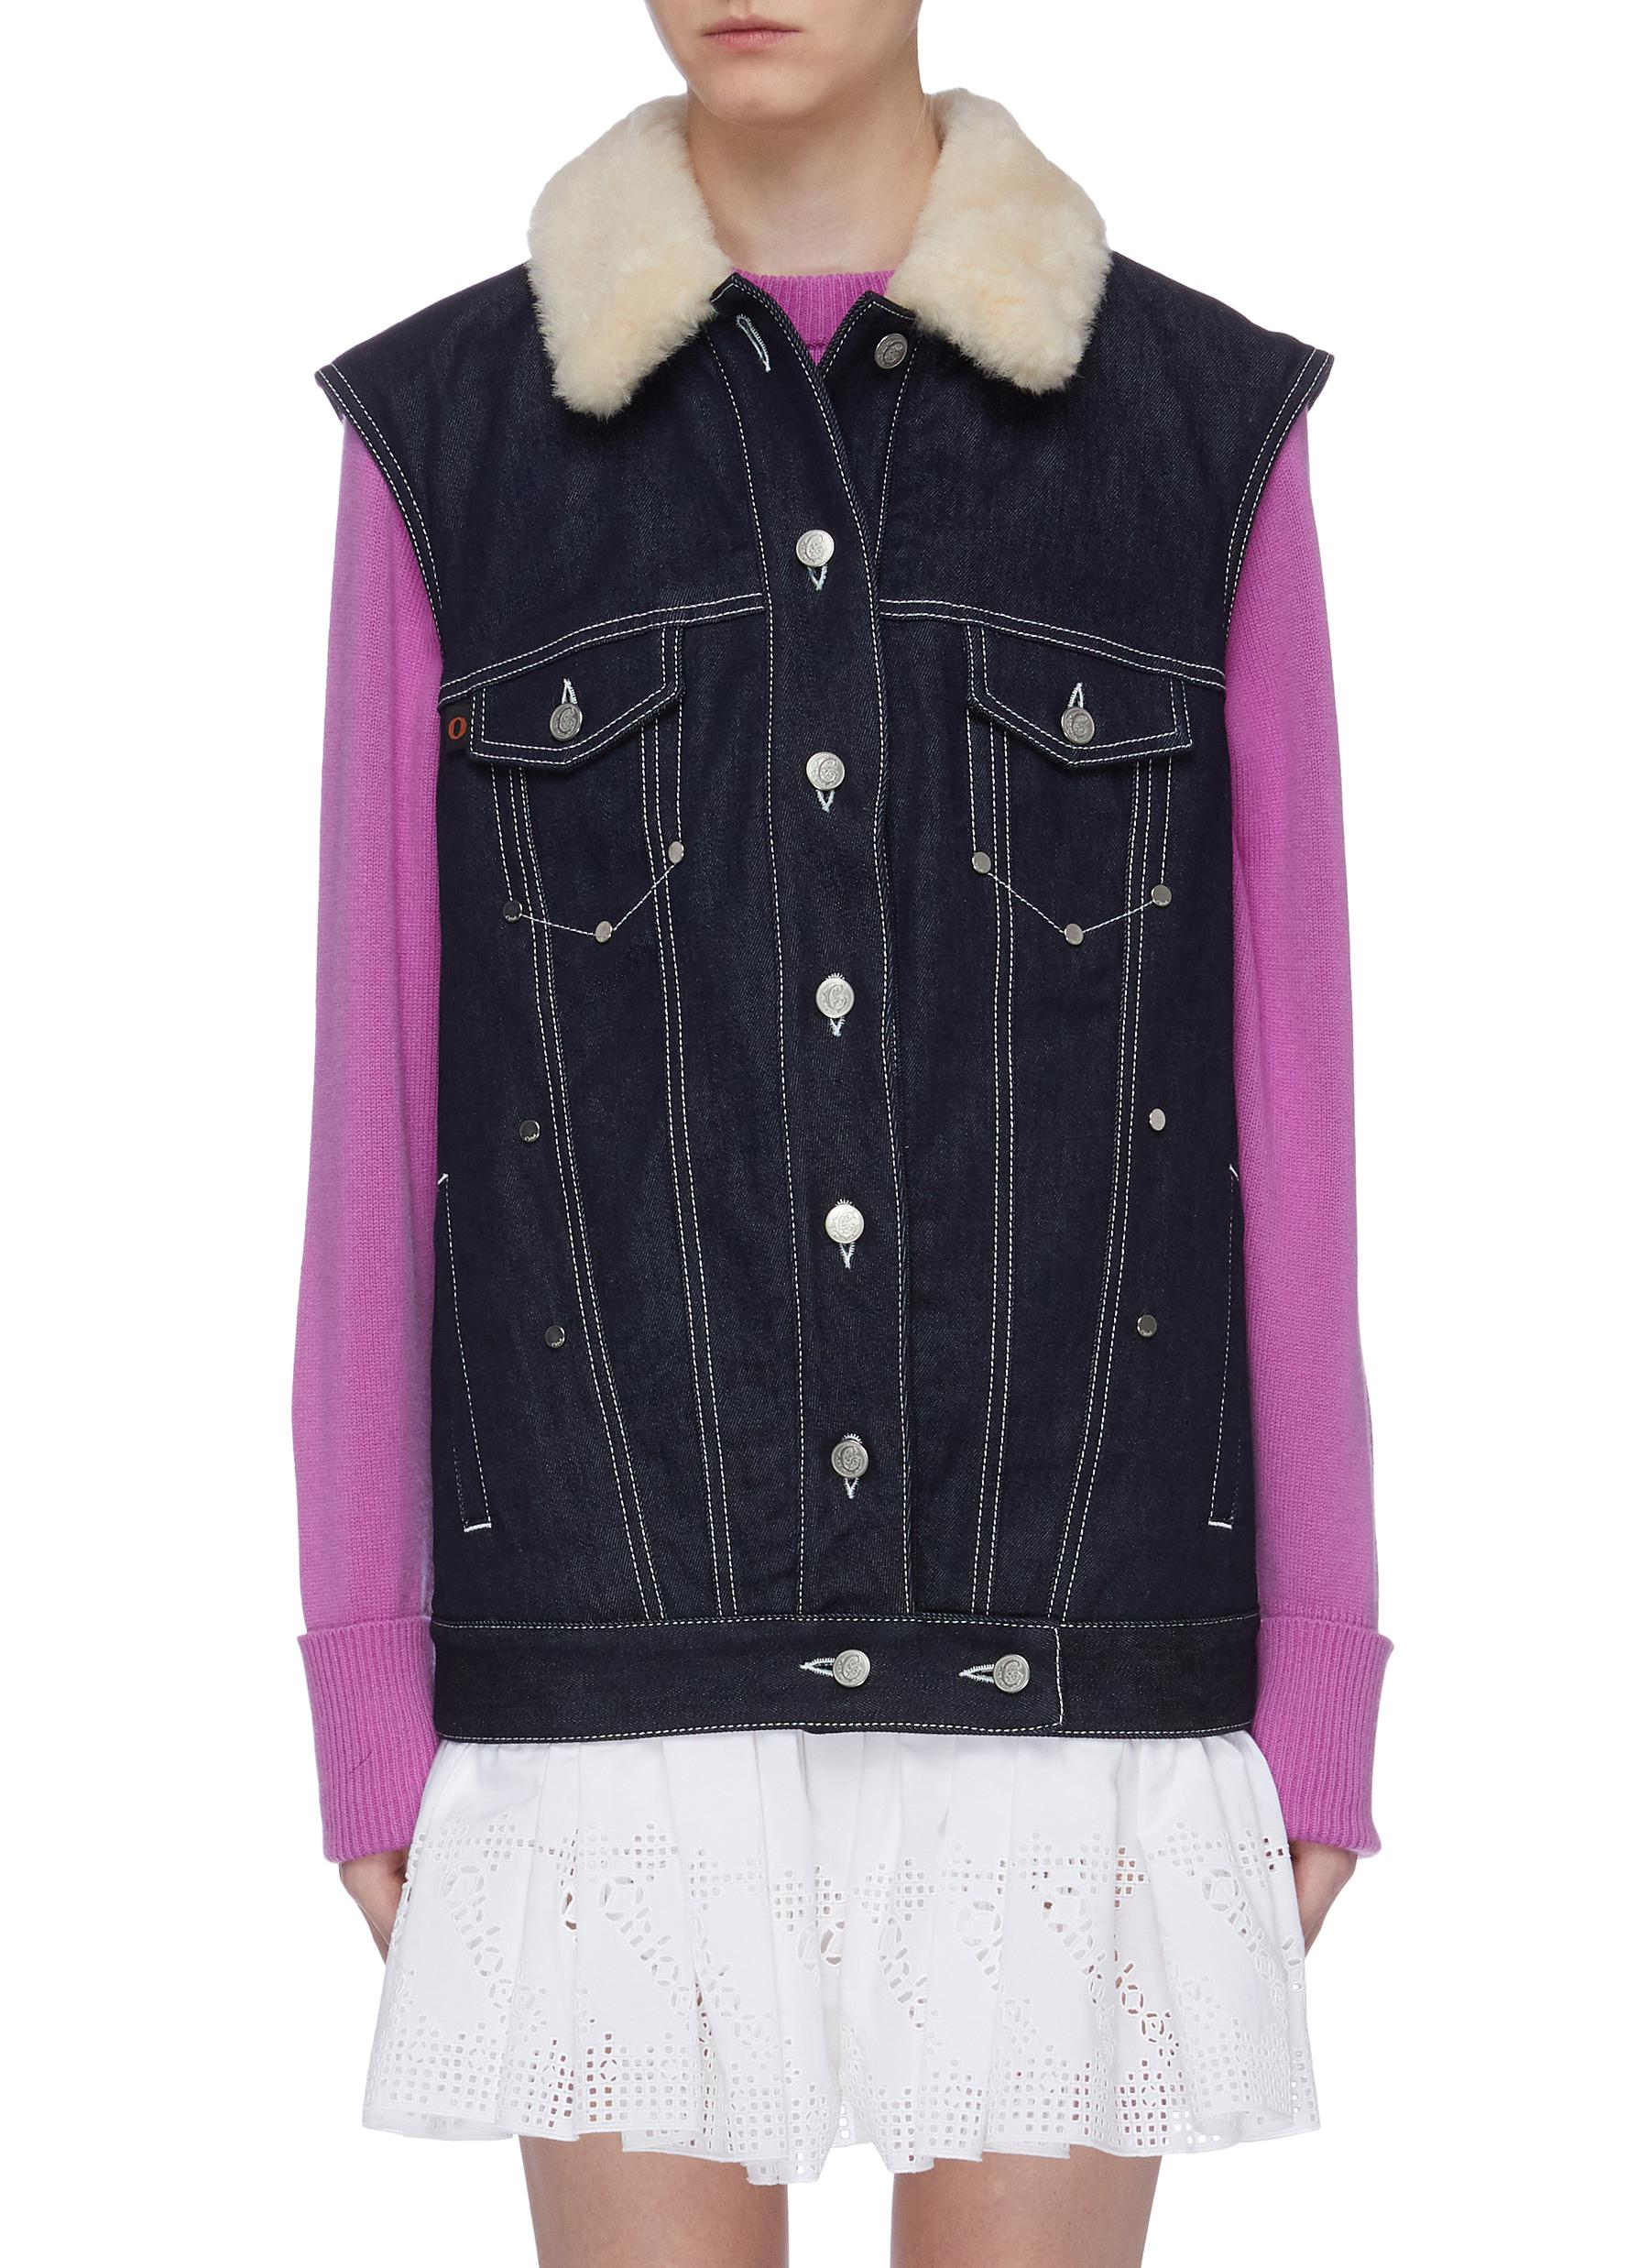 Shearling collar contrast topstitch denim vest by Chloé